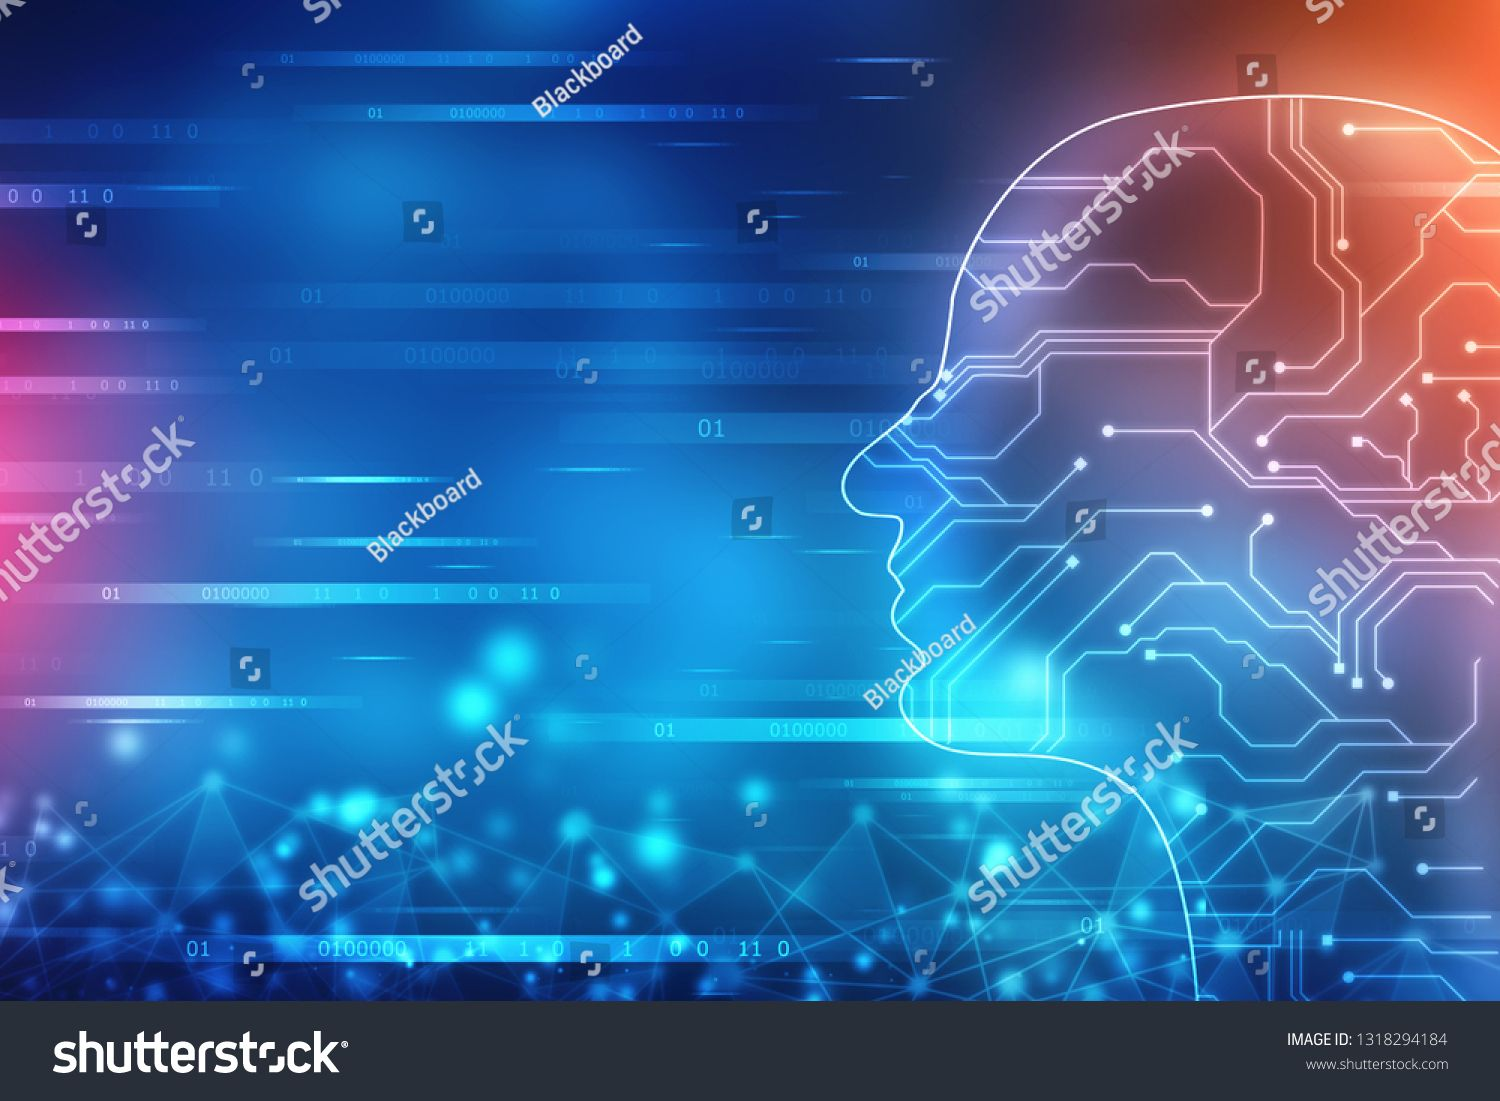 Abstract Artificial Intelligence Technology Web Background Human Head Outline With Binary Codes Virtu In 2020 Artificial Intelligence Technology Abstract Background